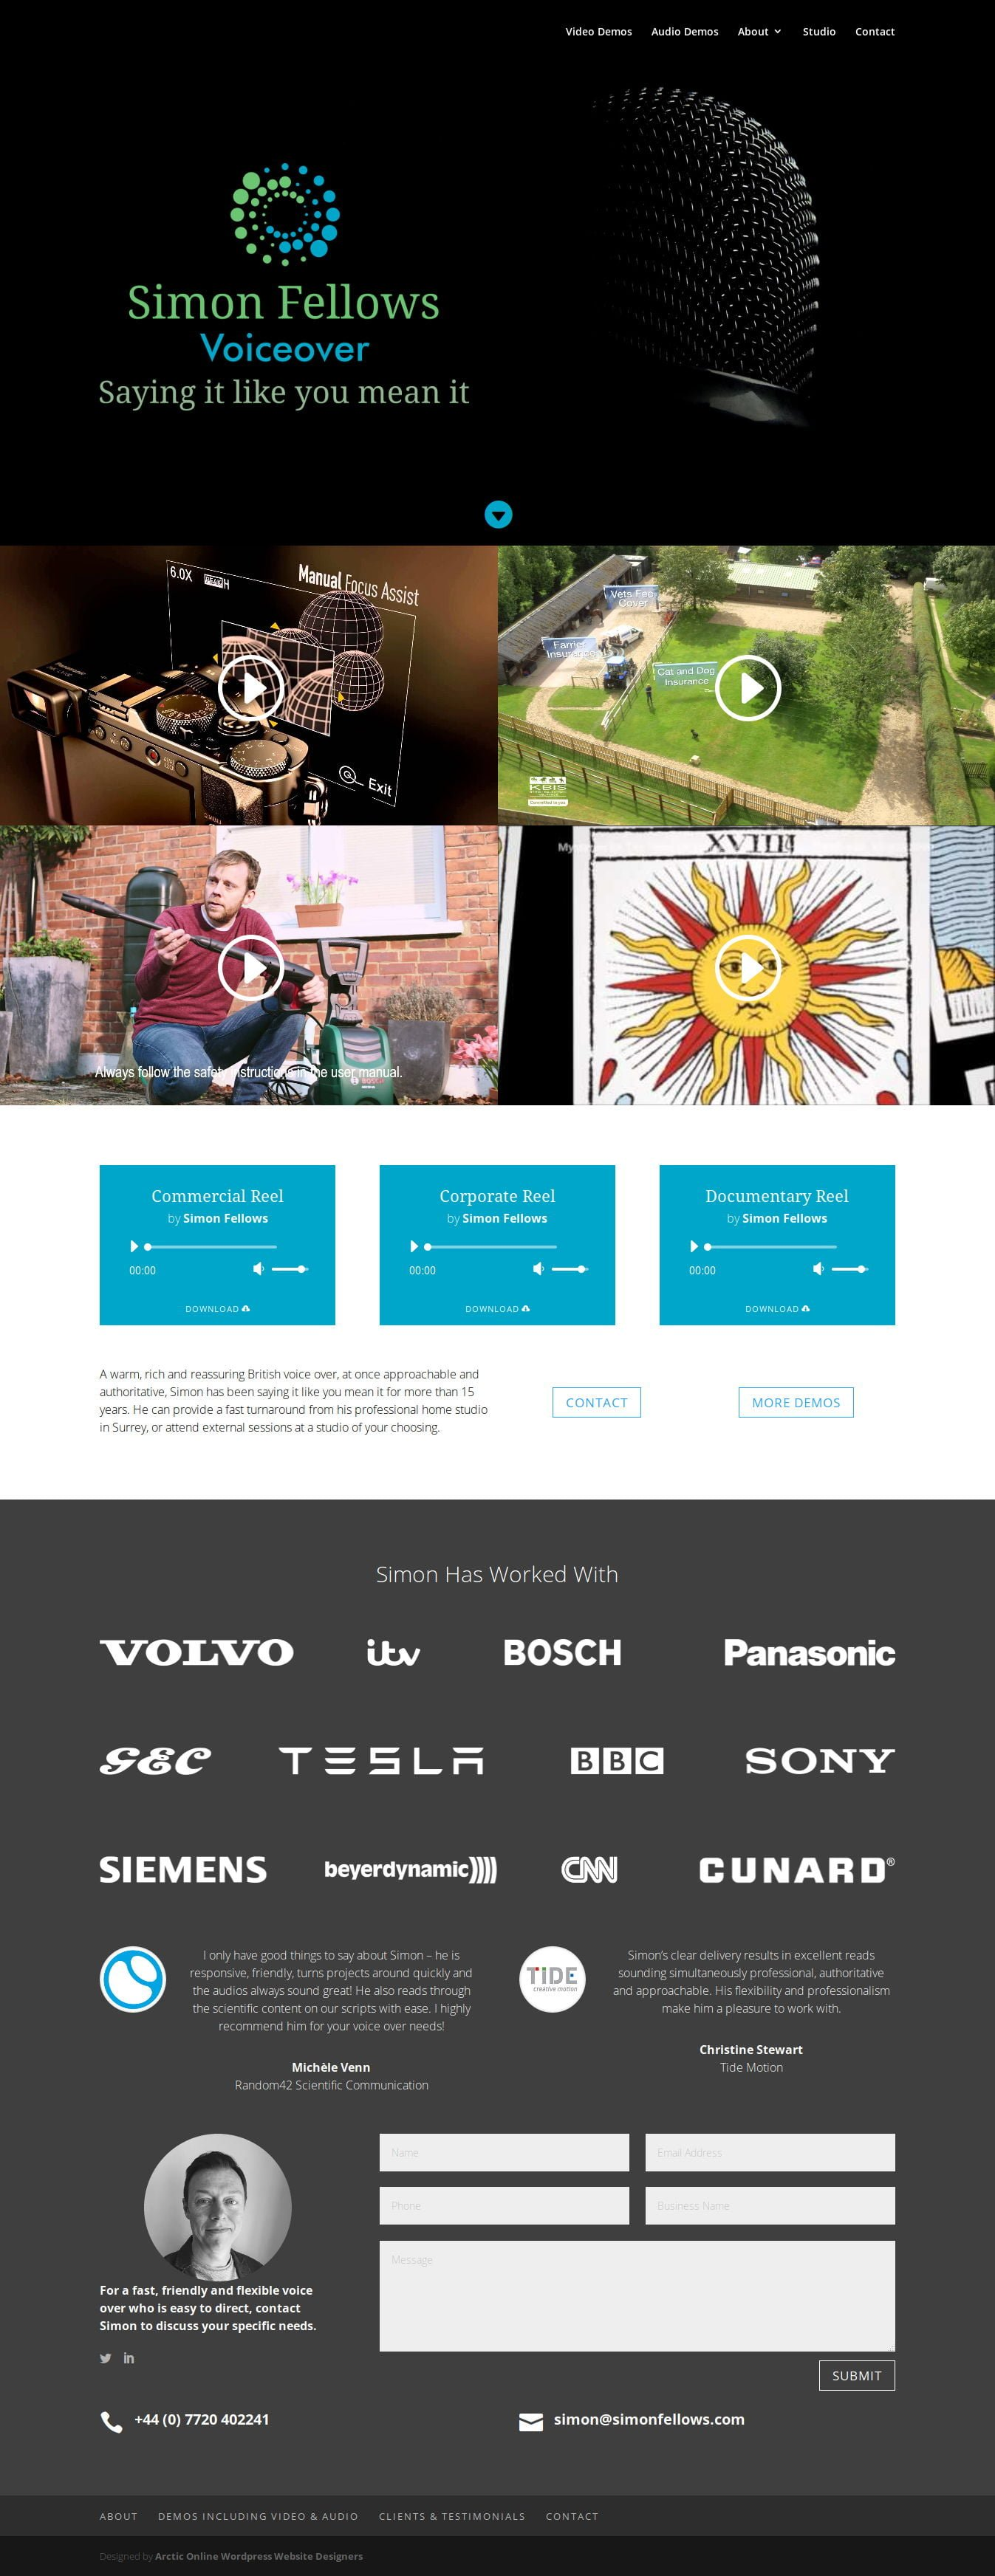 Home Page Screenshot of WordPress Website Design For Simon Fellows - International Voiceover